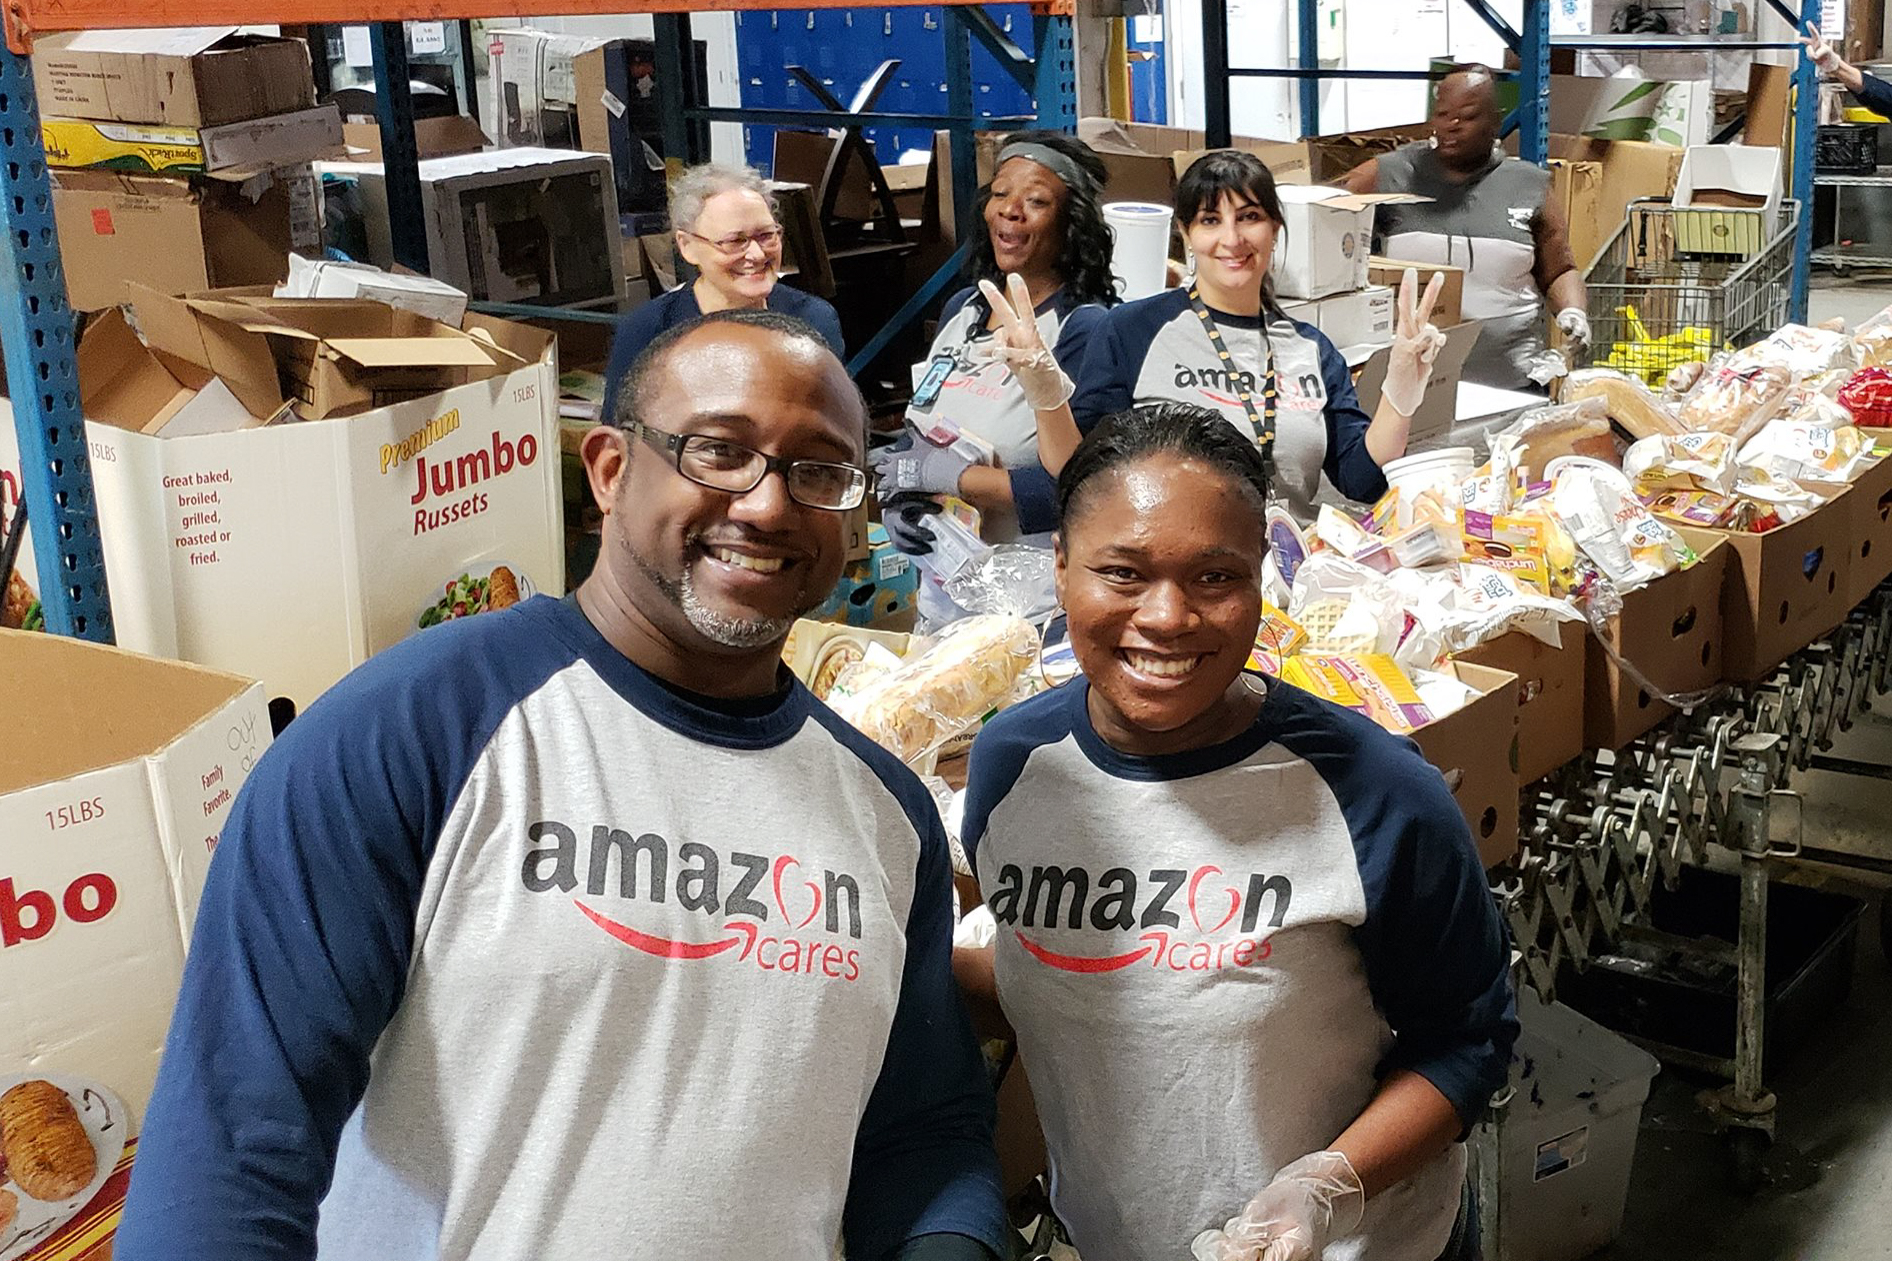 Thank You To Our Amazon Volunteers!